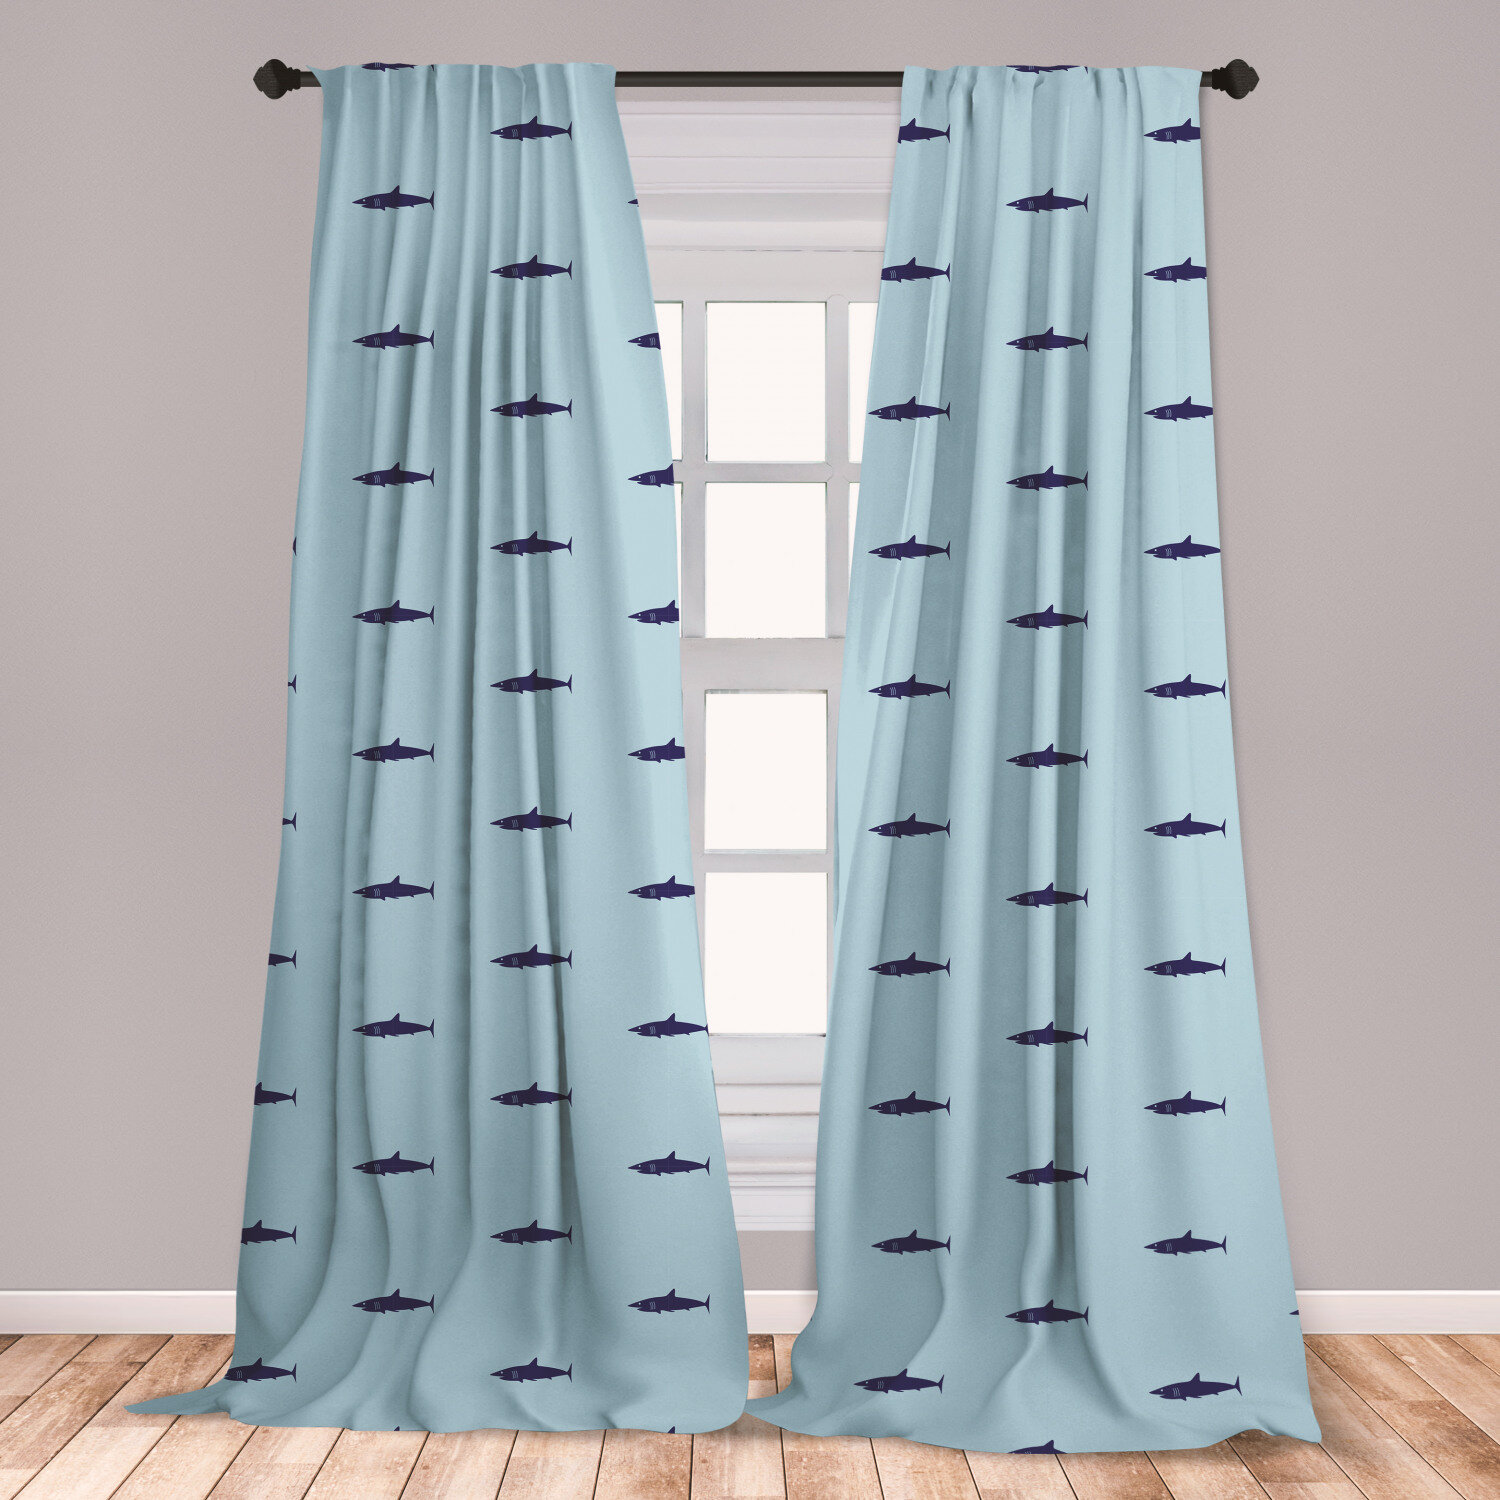 Ocean Sea Curtains Curtains for Living Room Bedroom Window Drapes 2 Panel Set